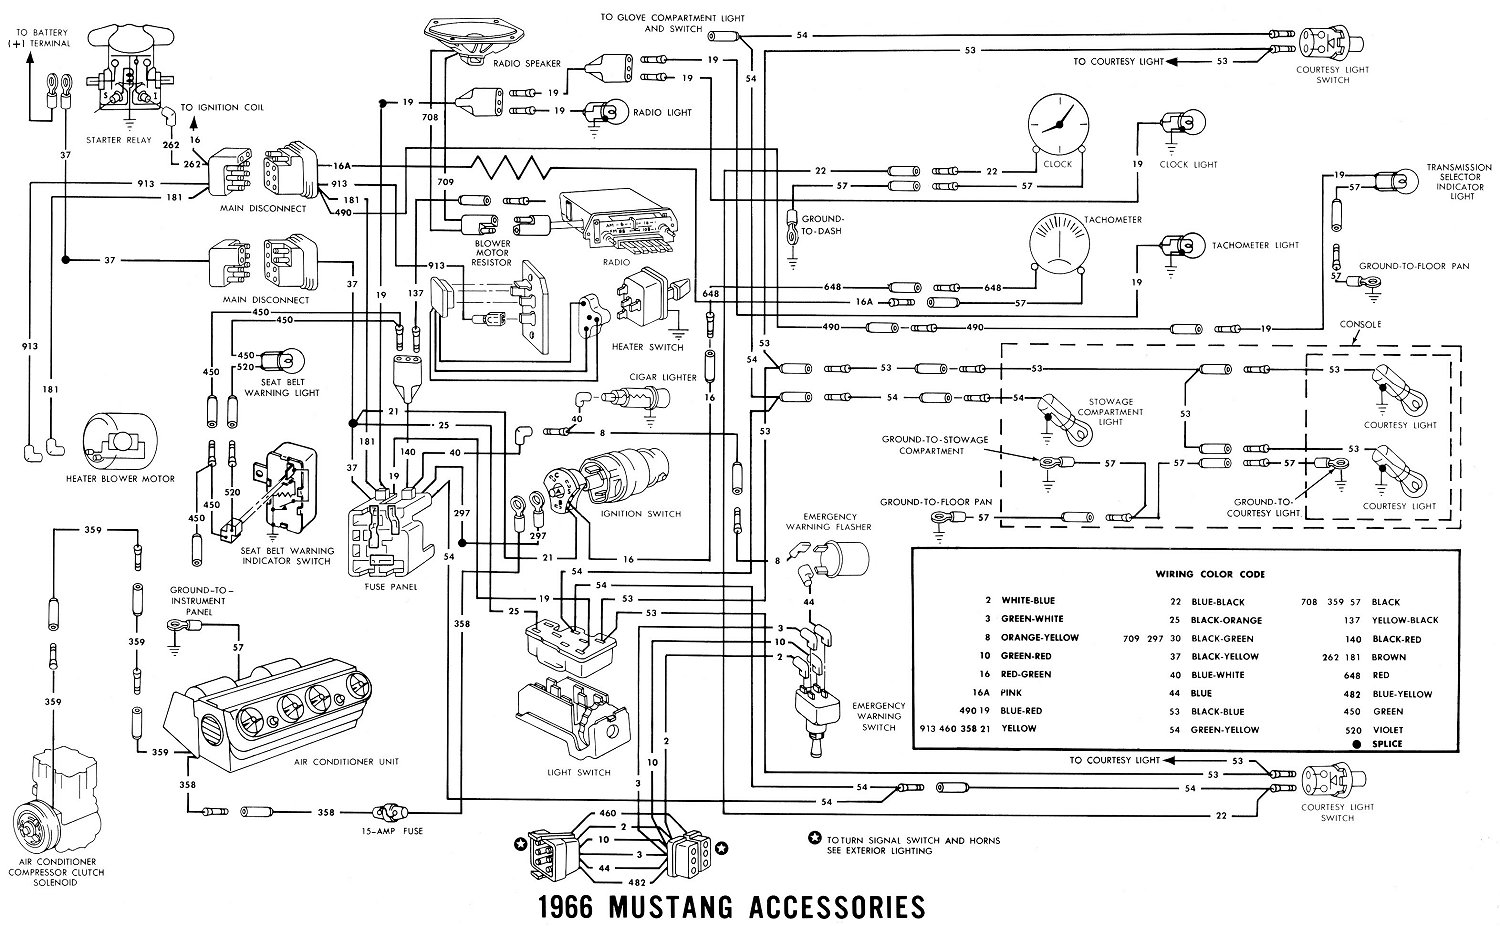 1966 Ford Mustang Accessories Wiring Diagram 2010 ford mustang wiring diagram lights wiring diagram simonand 2007 ford escape wiring diagram at couponss.co